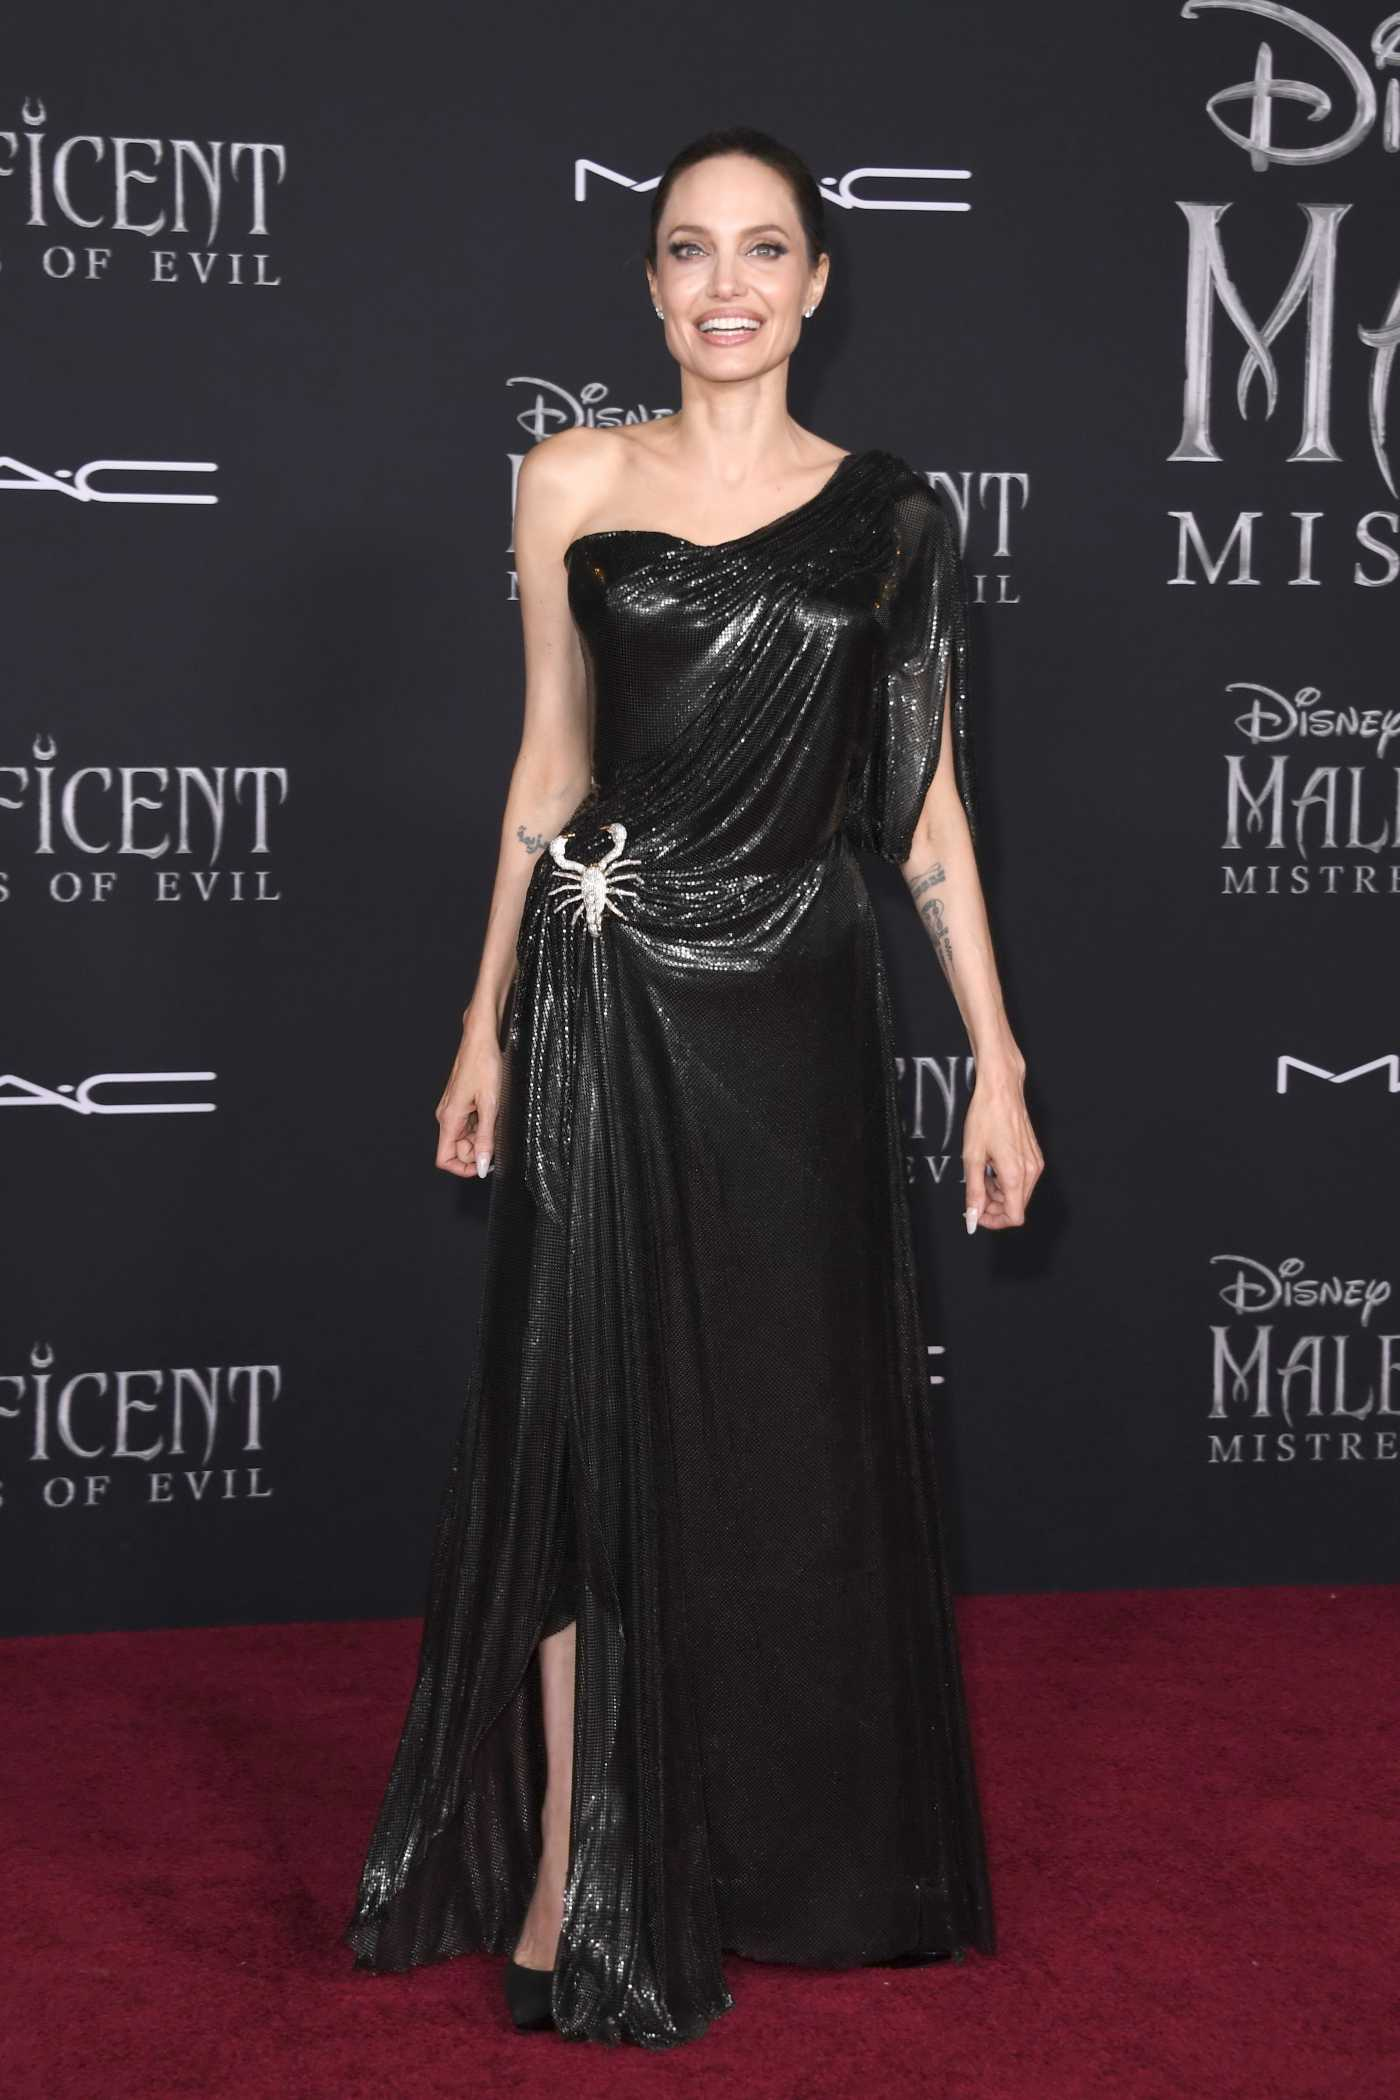 Angelina Jolie Attends the Maleficent: Mistress of Evil Premiere at El Capitan Theatre in Los Angeles 09/30/2019